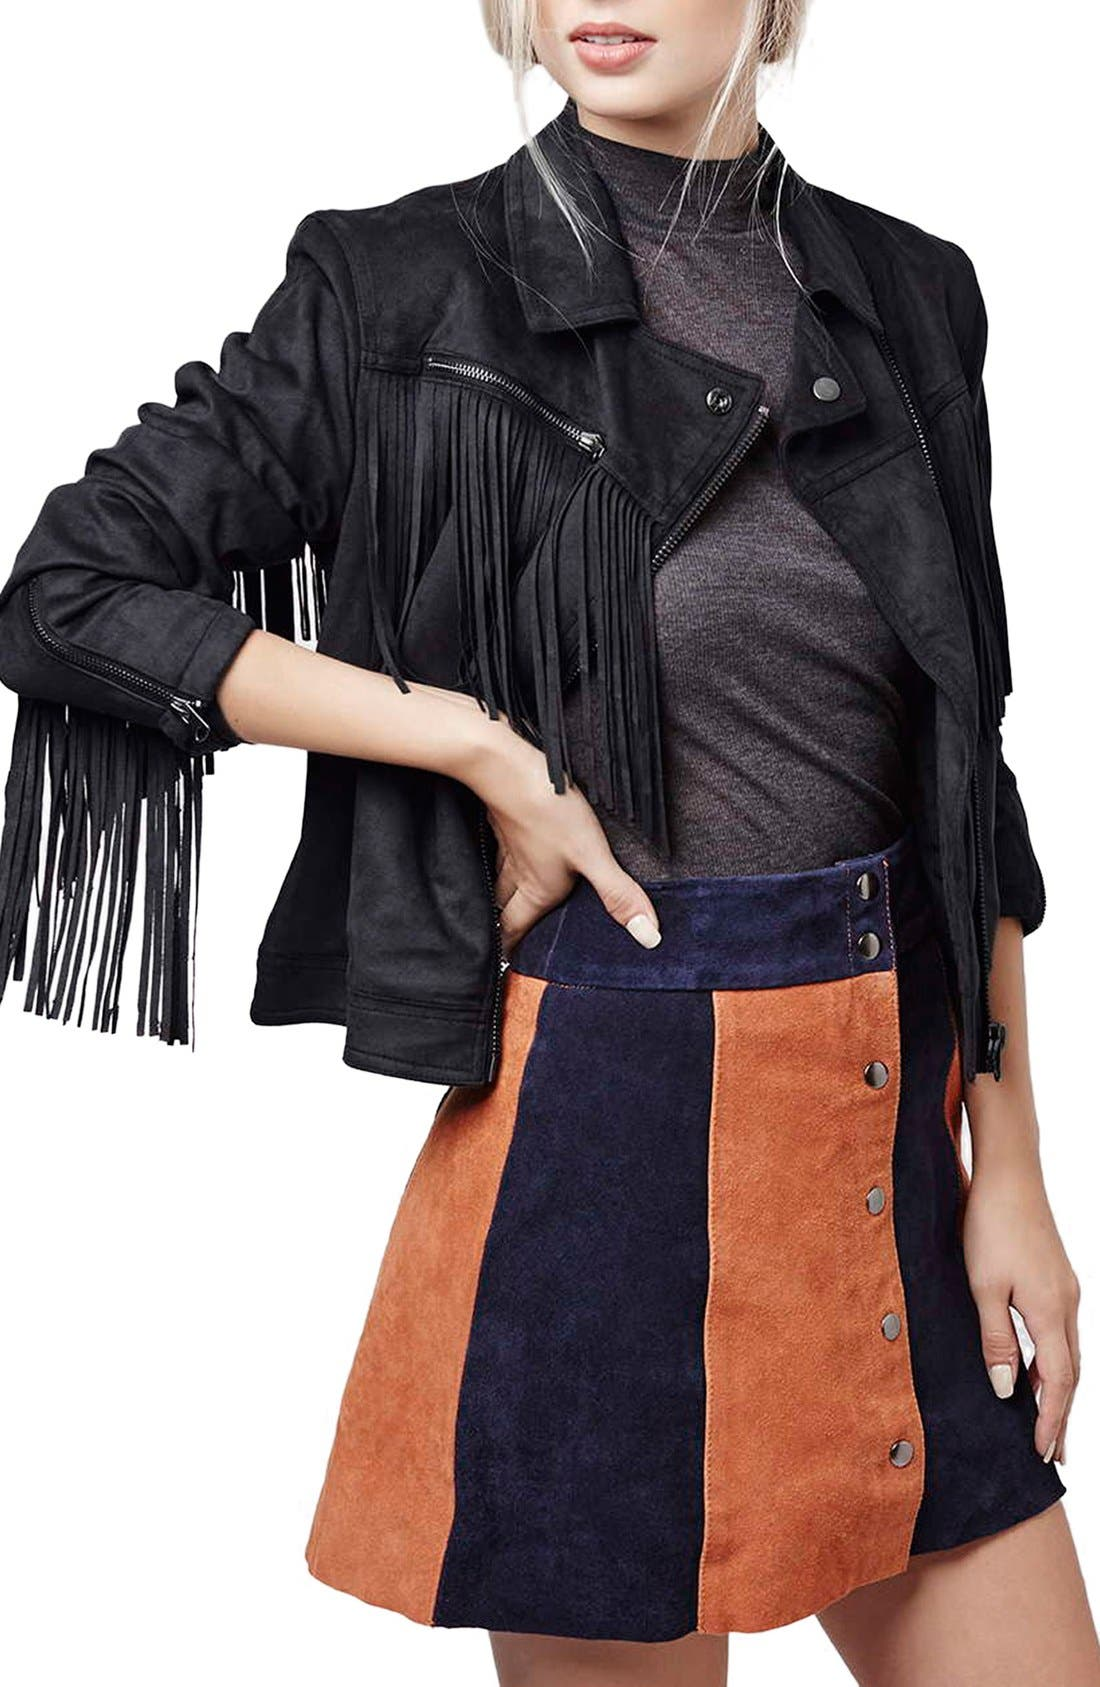 'Fliss' Asymmetrical Faux Suede Biker Jacket,                             Main thumbnail 1, color,                             410